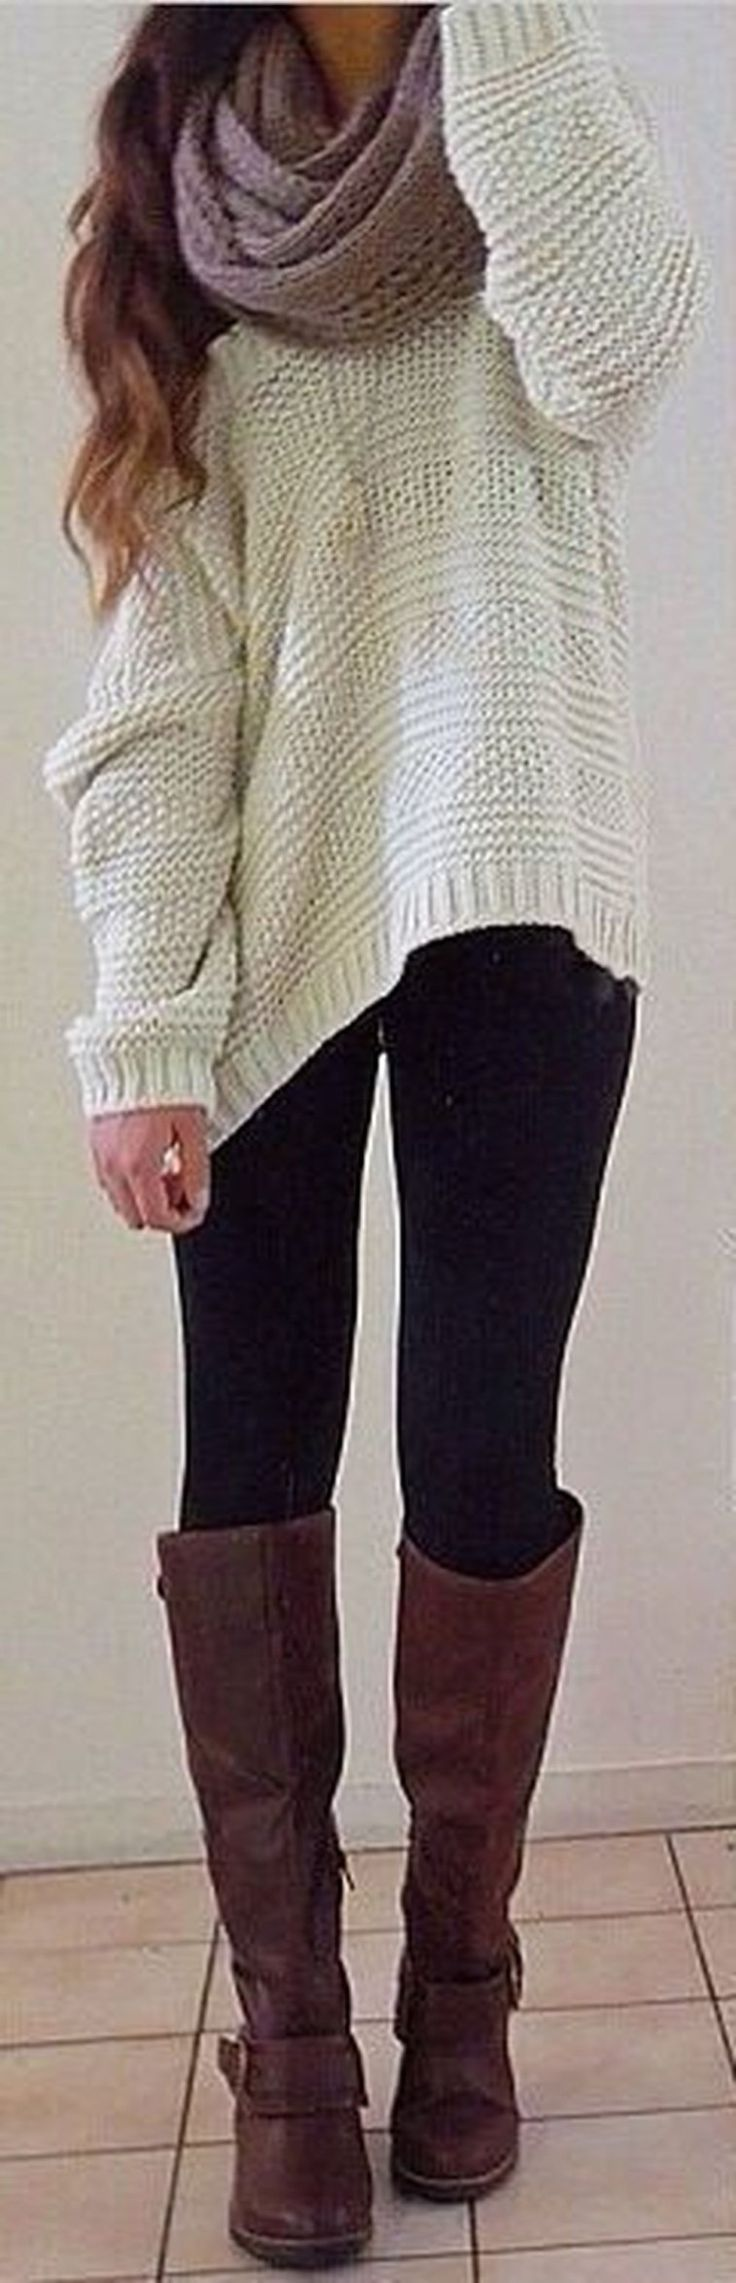 White or tan sweater with black leggings and brown boots.